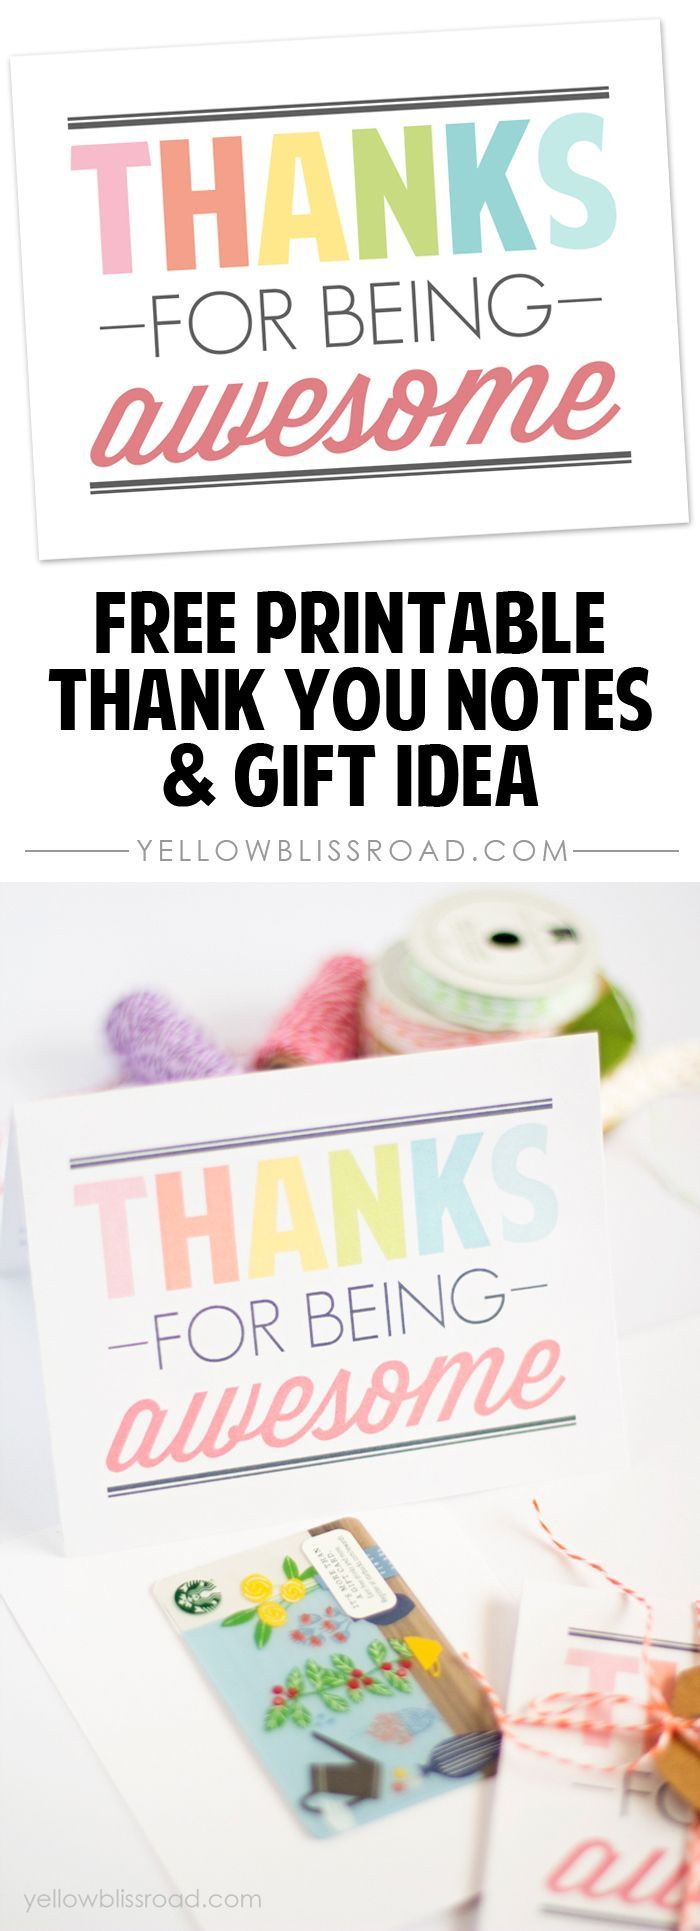 Free Printable Thank You Notes  Free Printable Religious Thank You Cards